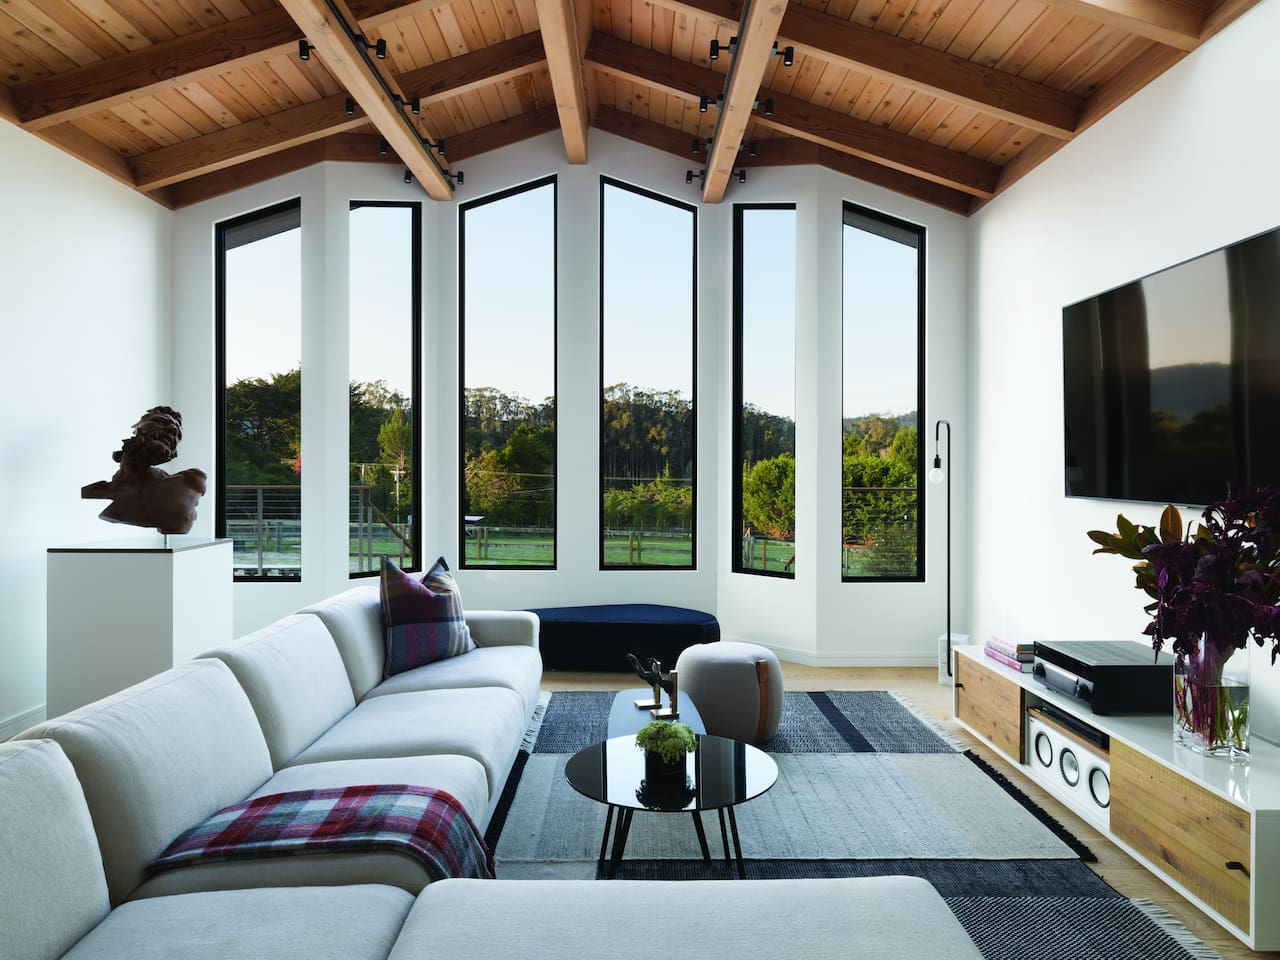 Overlooking Inverness ridge - expansive, insulated windows